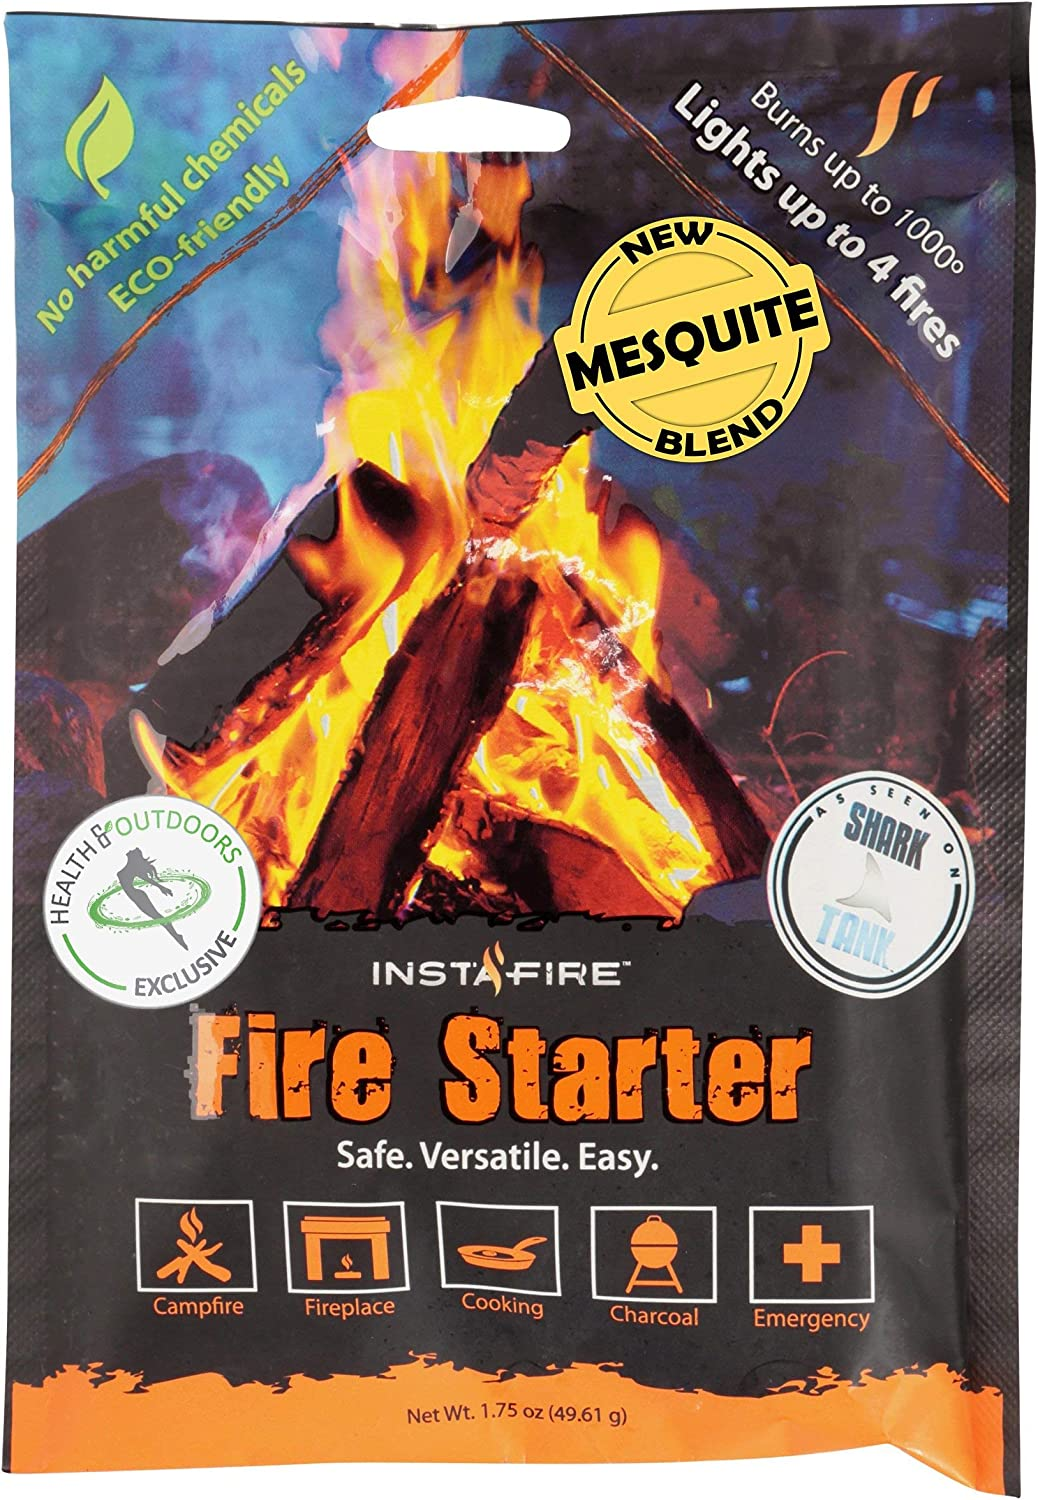 Instafire overseas New Blends Granulated Fire Outlet SALE Eco-F Starter All Natural